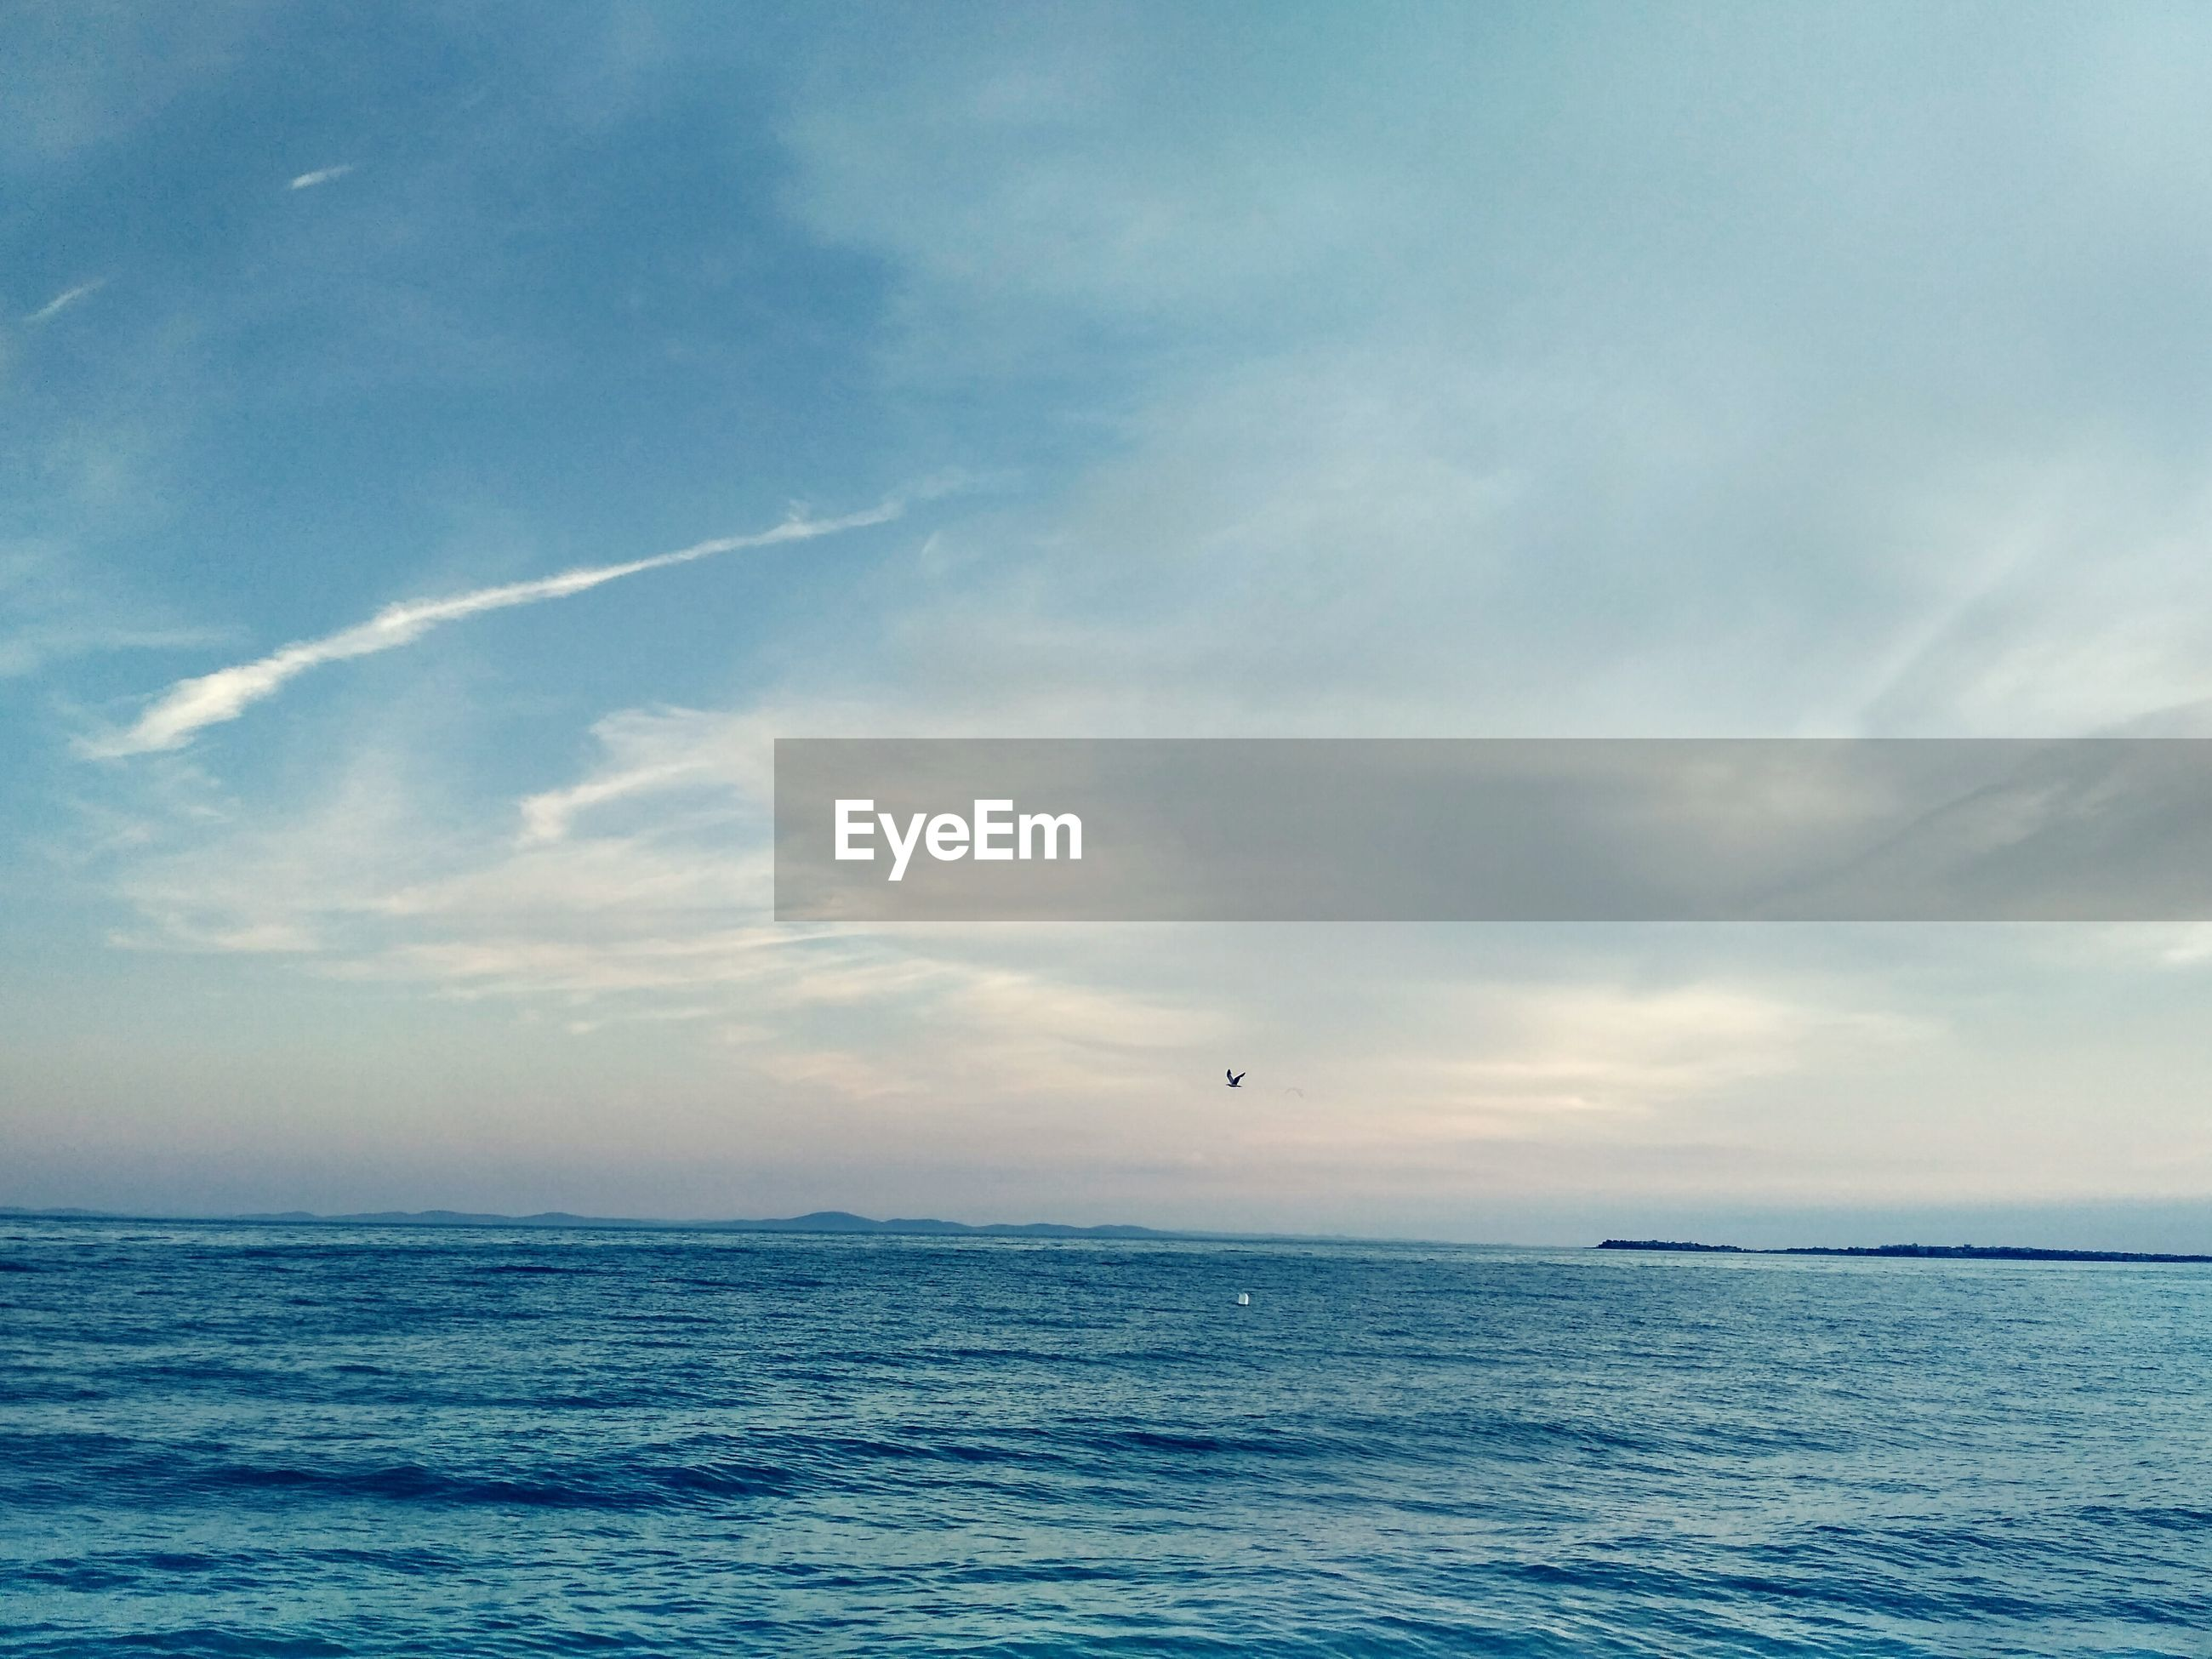 SCENIC VIEW OF SEA AGAINST VAPOR TRAIL IN SKY